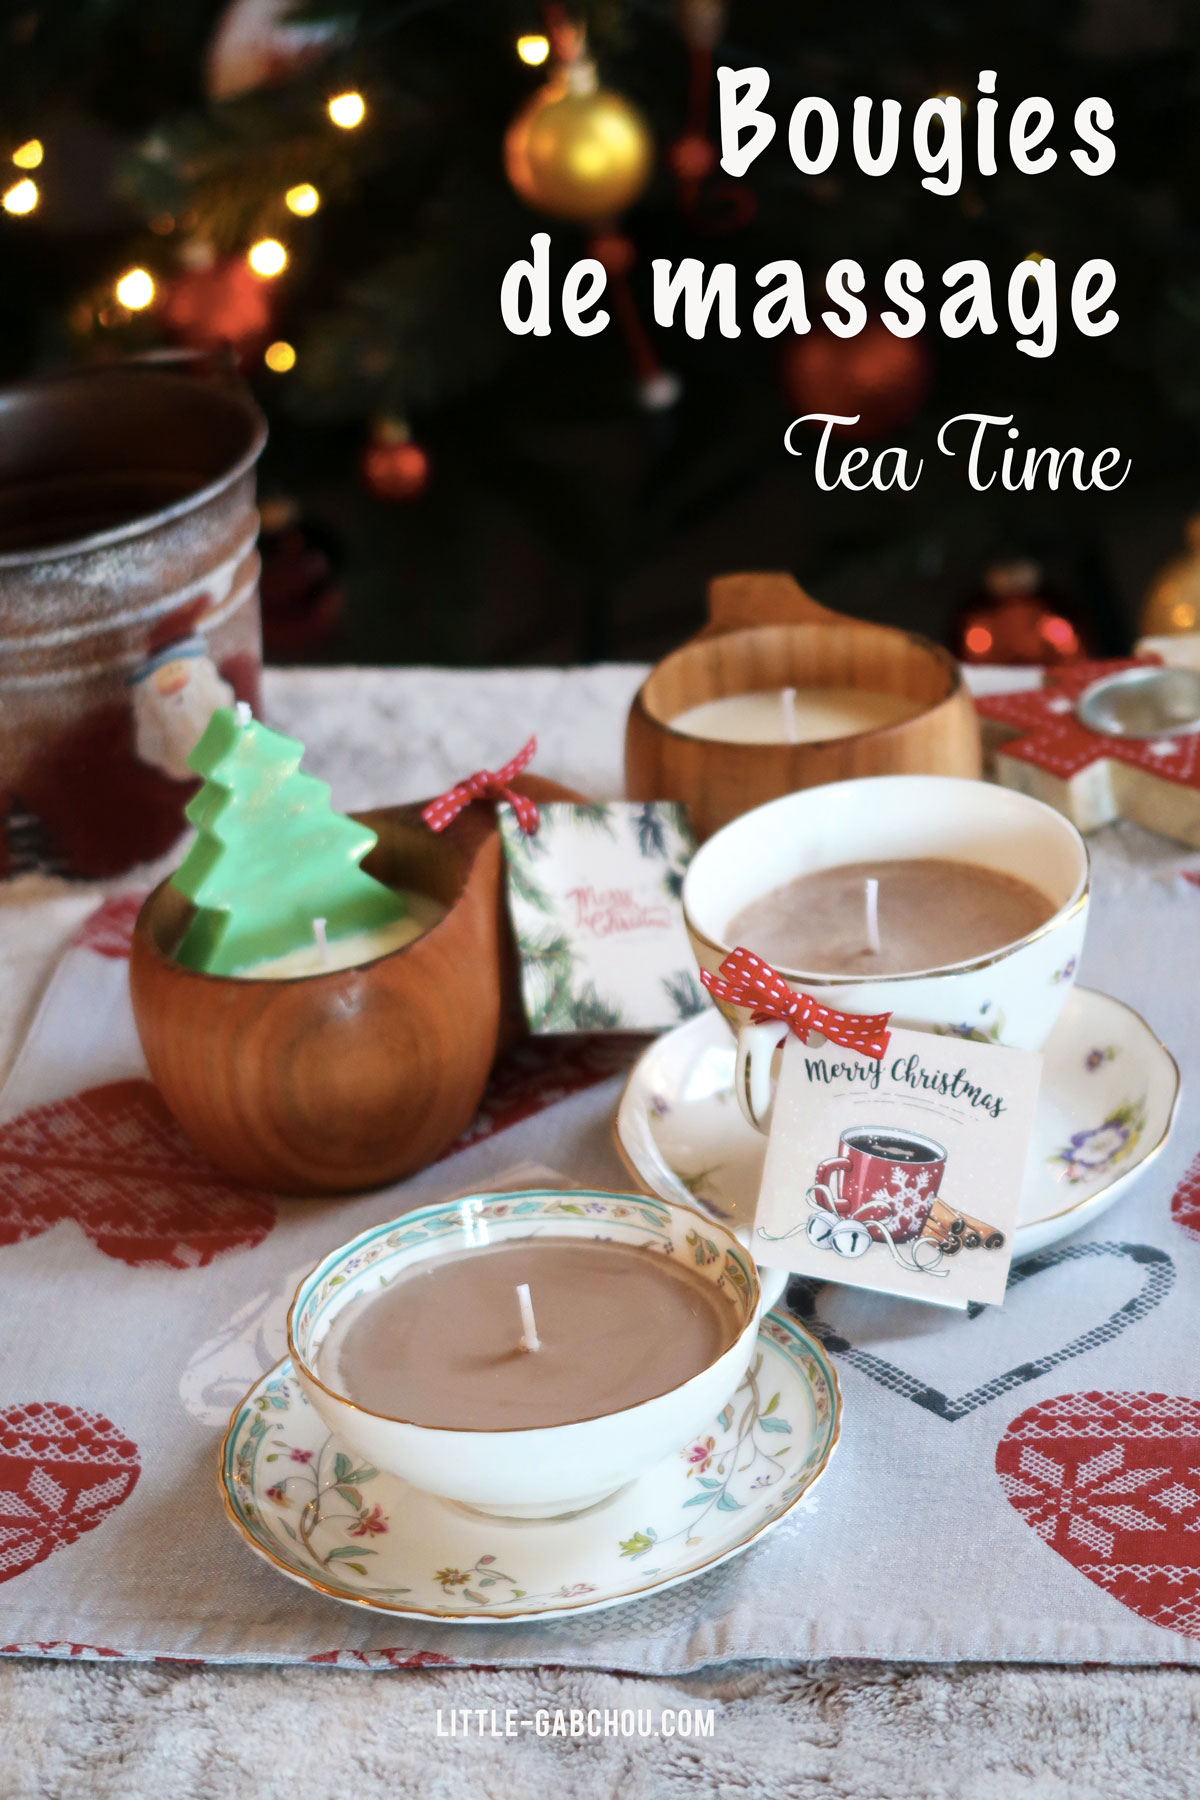 tuto id e cadeau la bougie de massage tea time. Black Bedroom Furniture Sets. Home Design Ideas